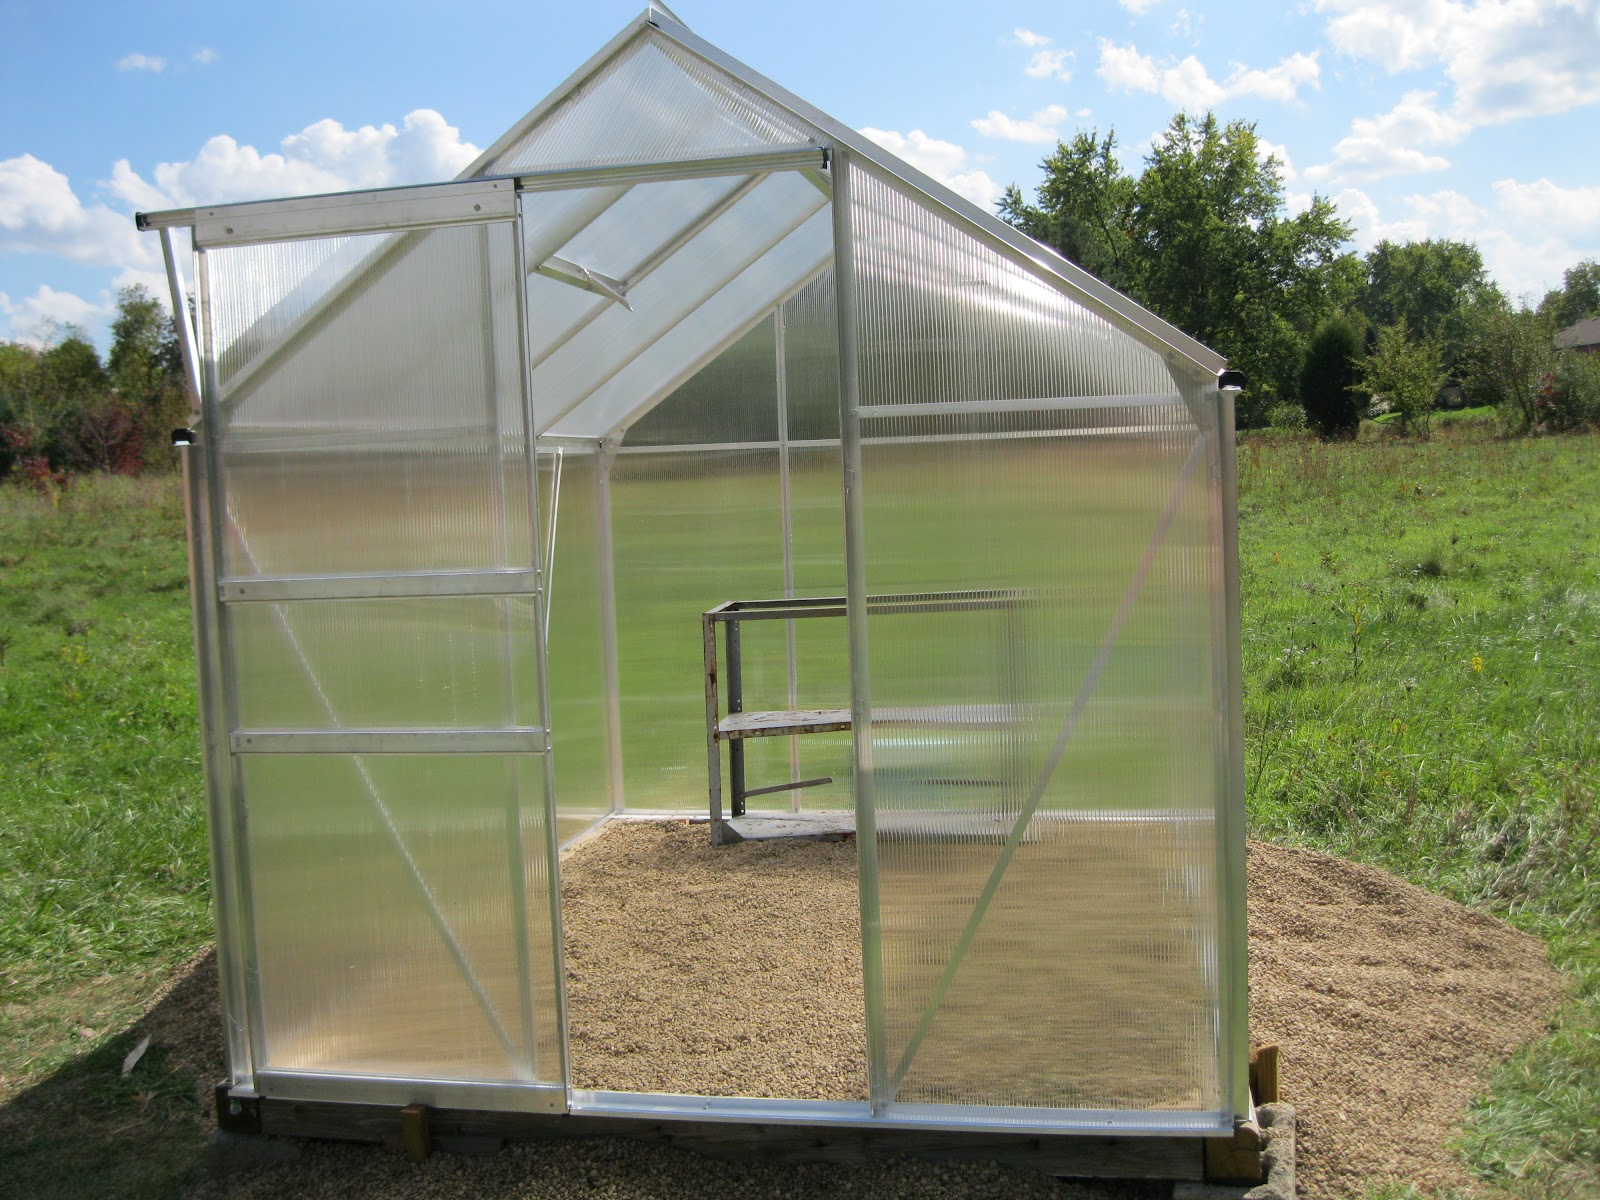 Harbor Freight 6x8 Greenhouse : Amy s harvest harbor freight greenhouse